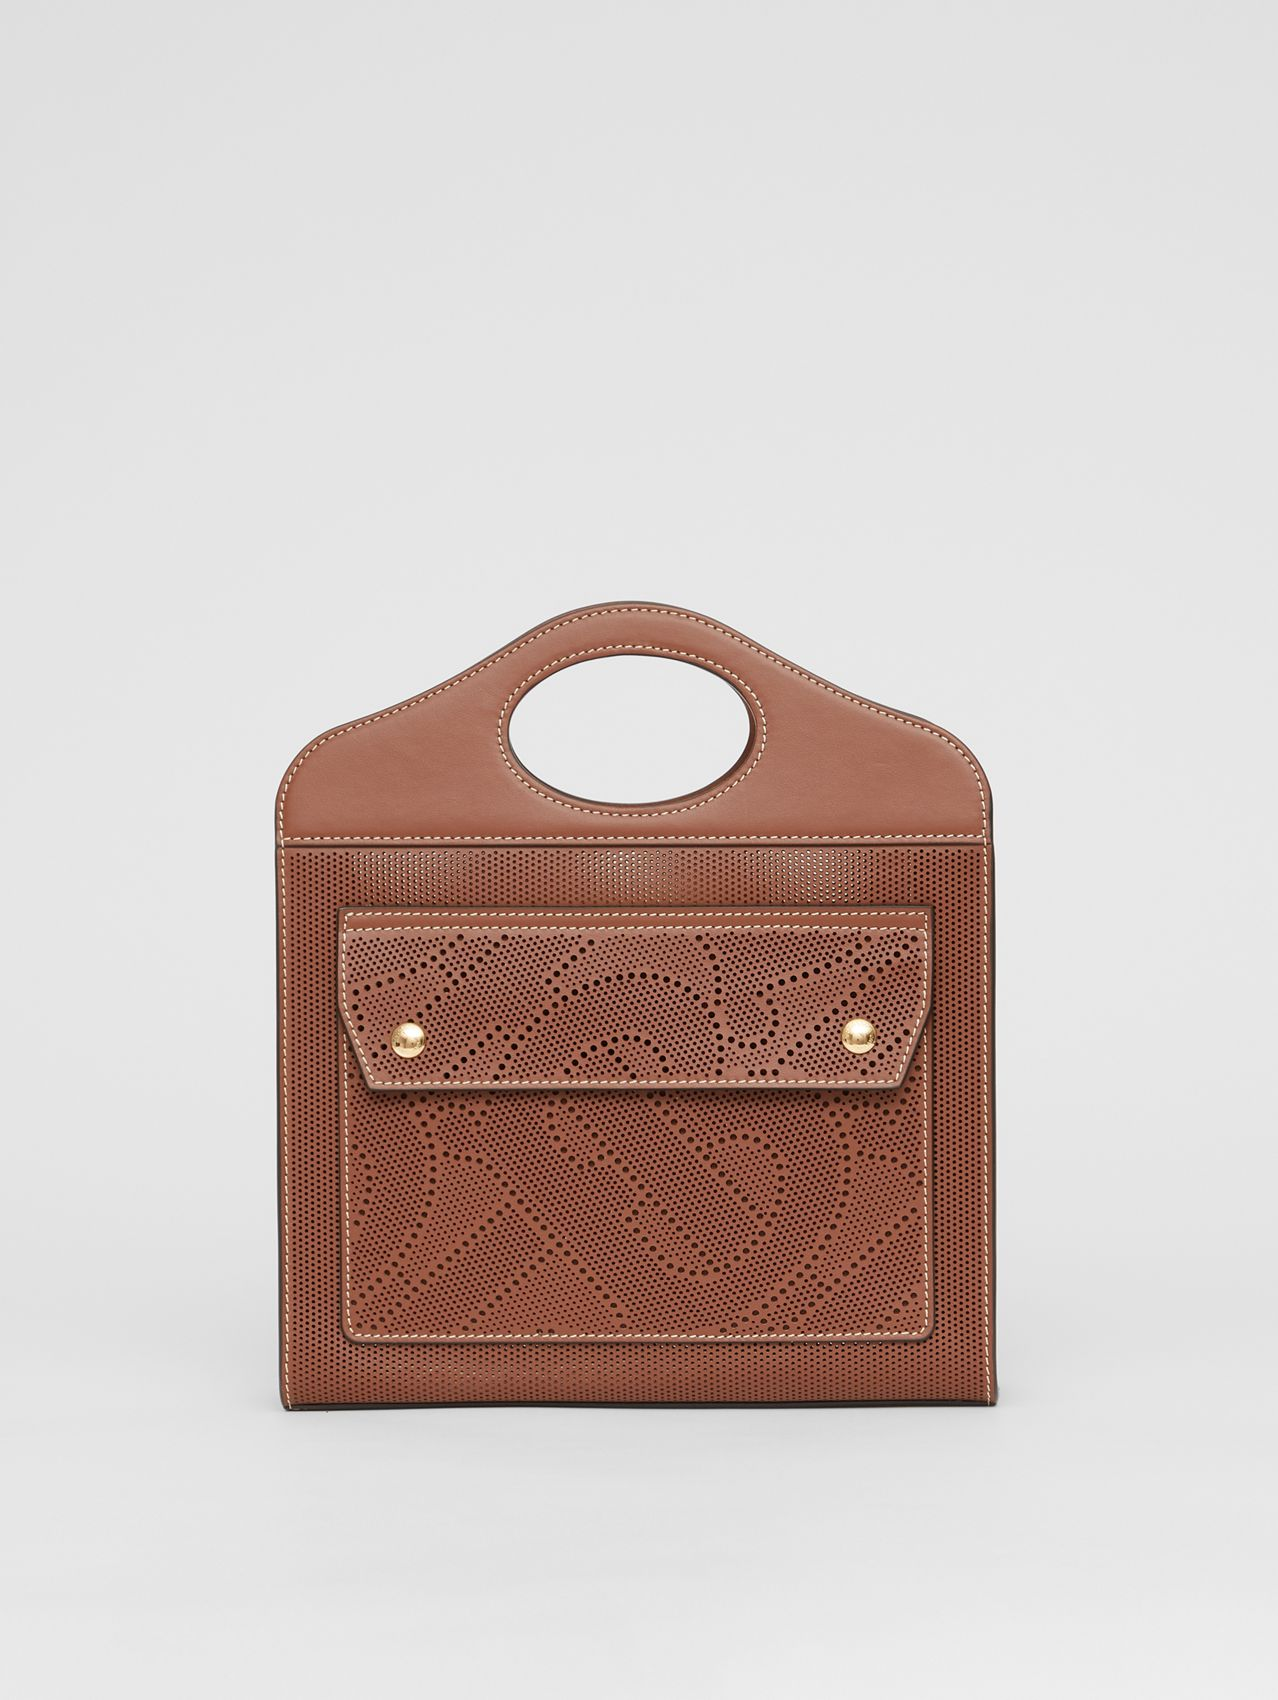 Mini Perforated Monogram Leather Pocket Bag in Tan